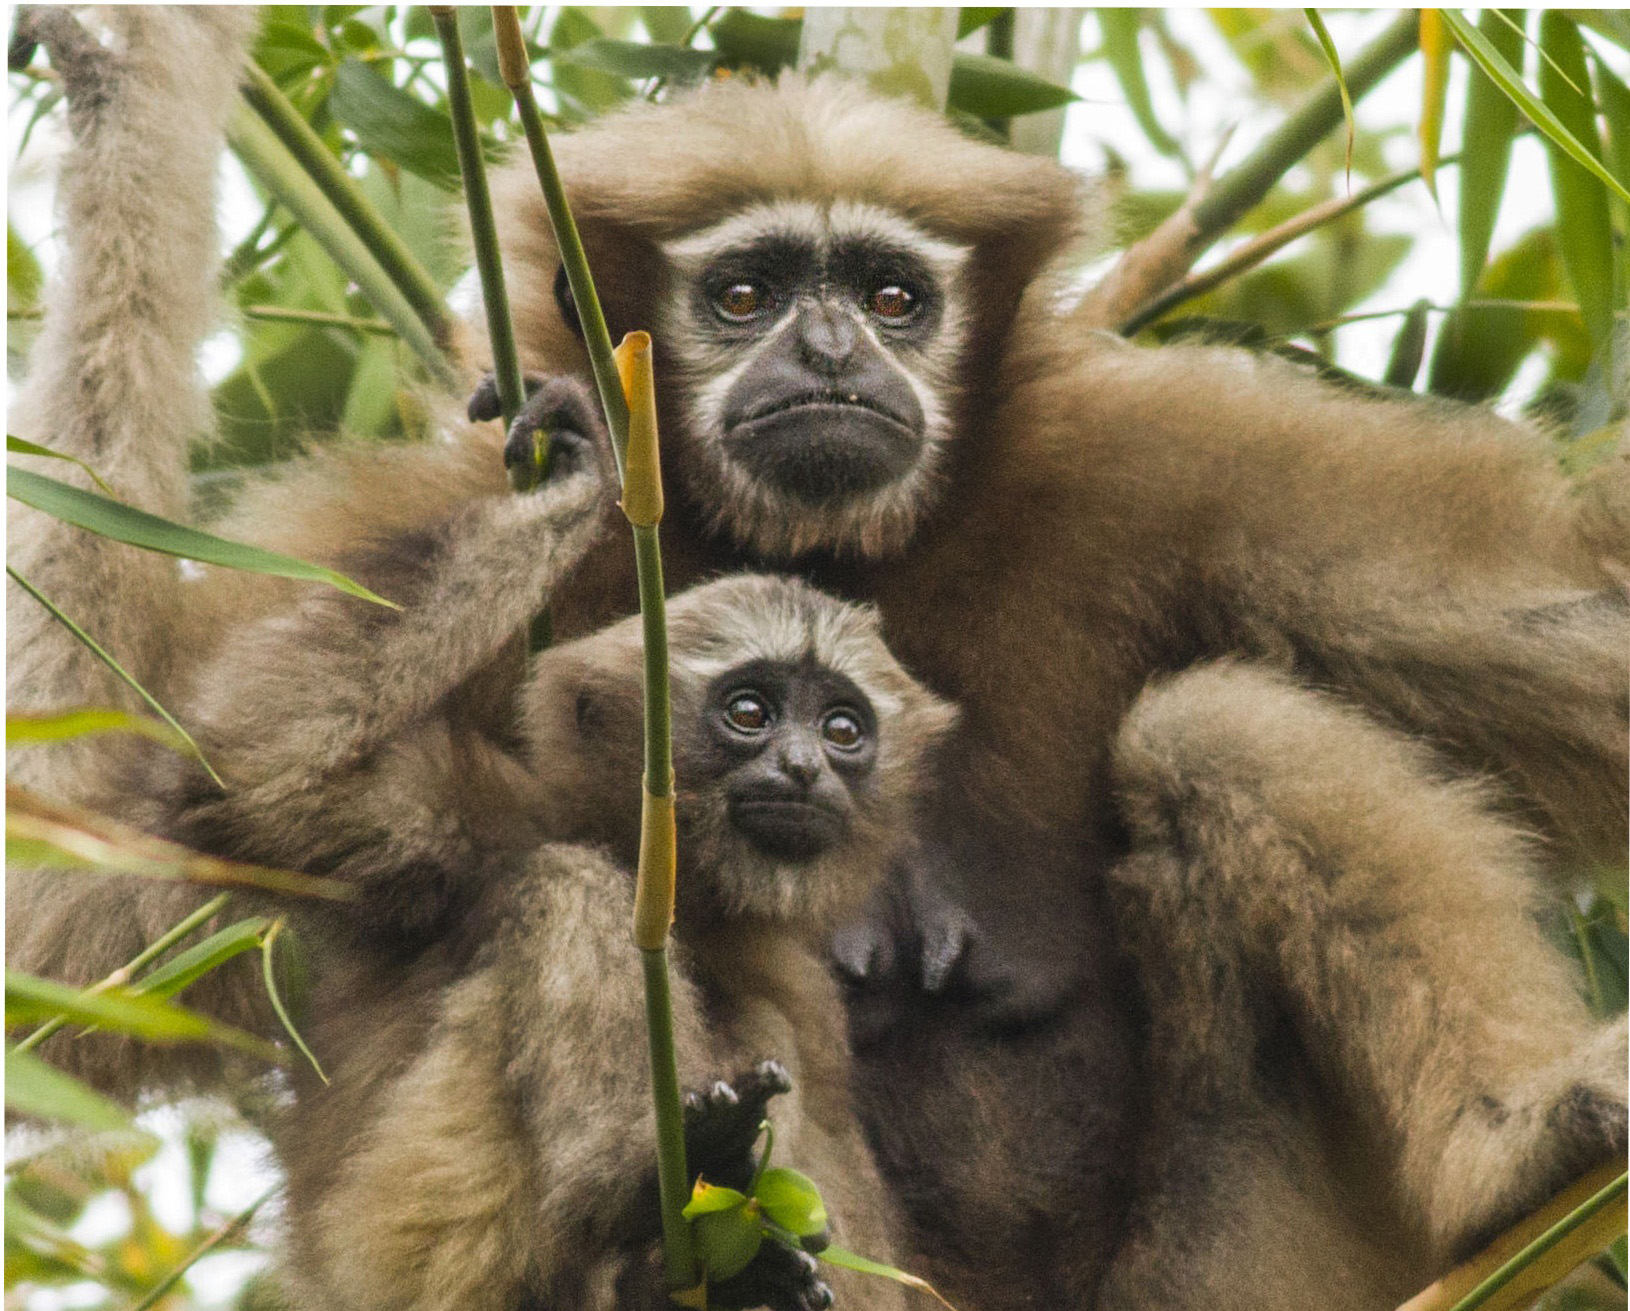 Male and female western hoolock gibbons are similar in size, but dramatically different in colour. Males are black in colour, while females have pale, brown-blonde fur. Both are characterised by distinctive white markings on the face, which they develop as they age. Photo: Diganta Gogoi